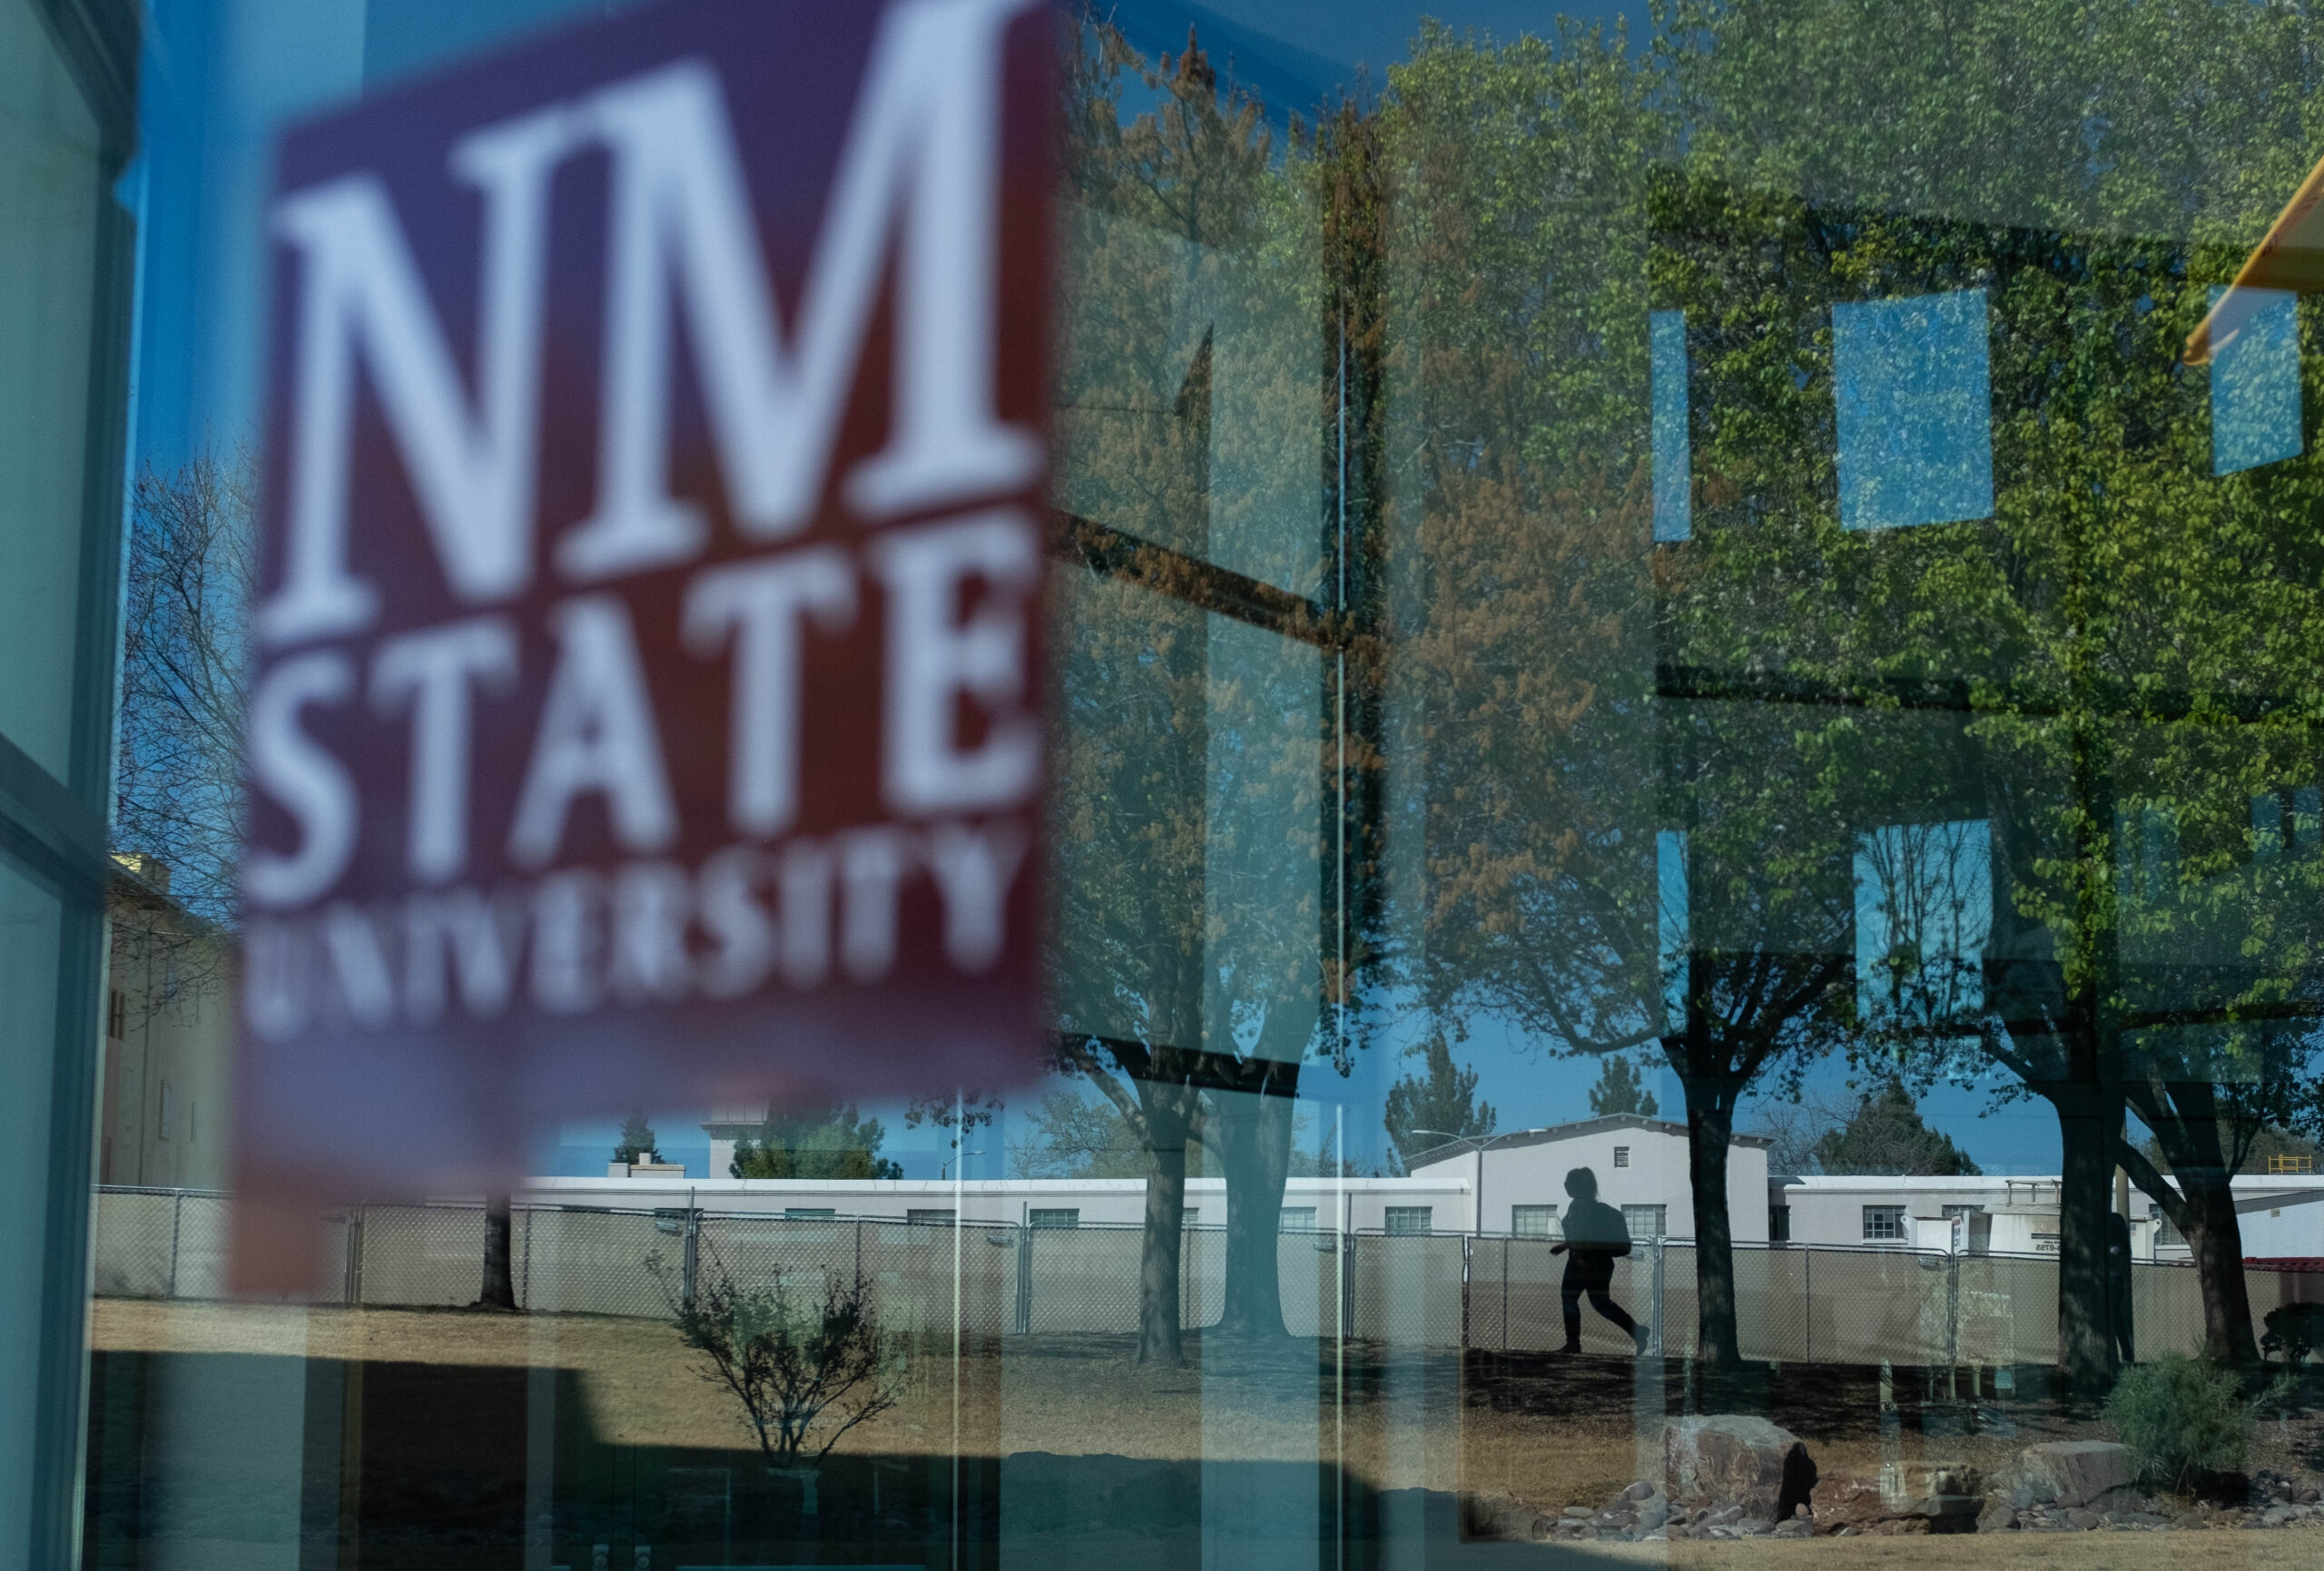 According to the U.S. News & World Report, NMSU is listed on the Best Global Universities 2021 rankings. The list features 1,500 institutions from 86 countries. | NMSU photo by Josh Bachman